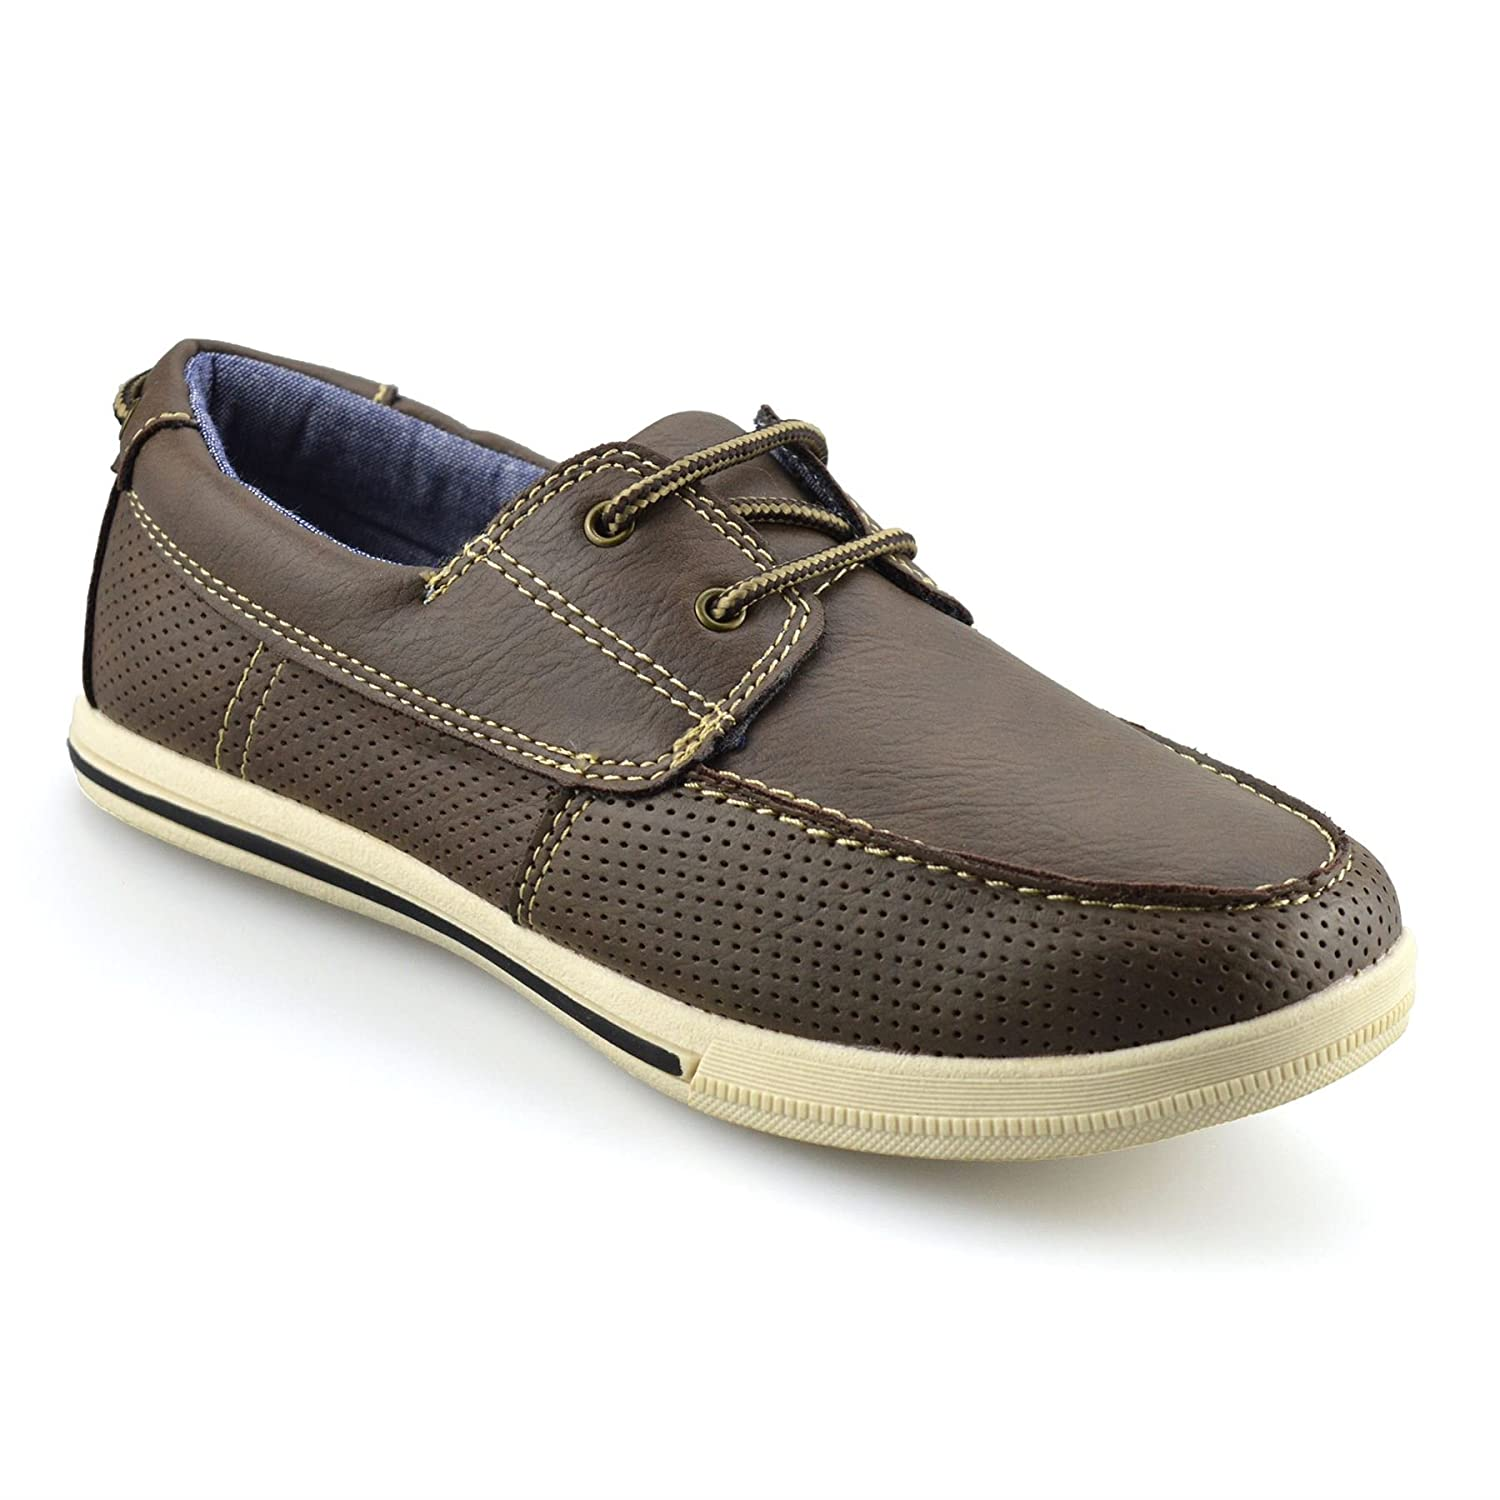 Boys Kids Casual Summer Lace Up Slip On Smart School Trainers Boat Shoes Smart Fit